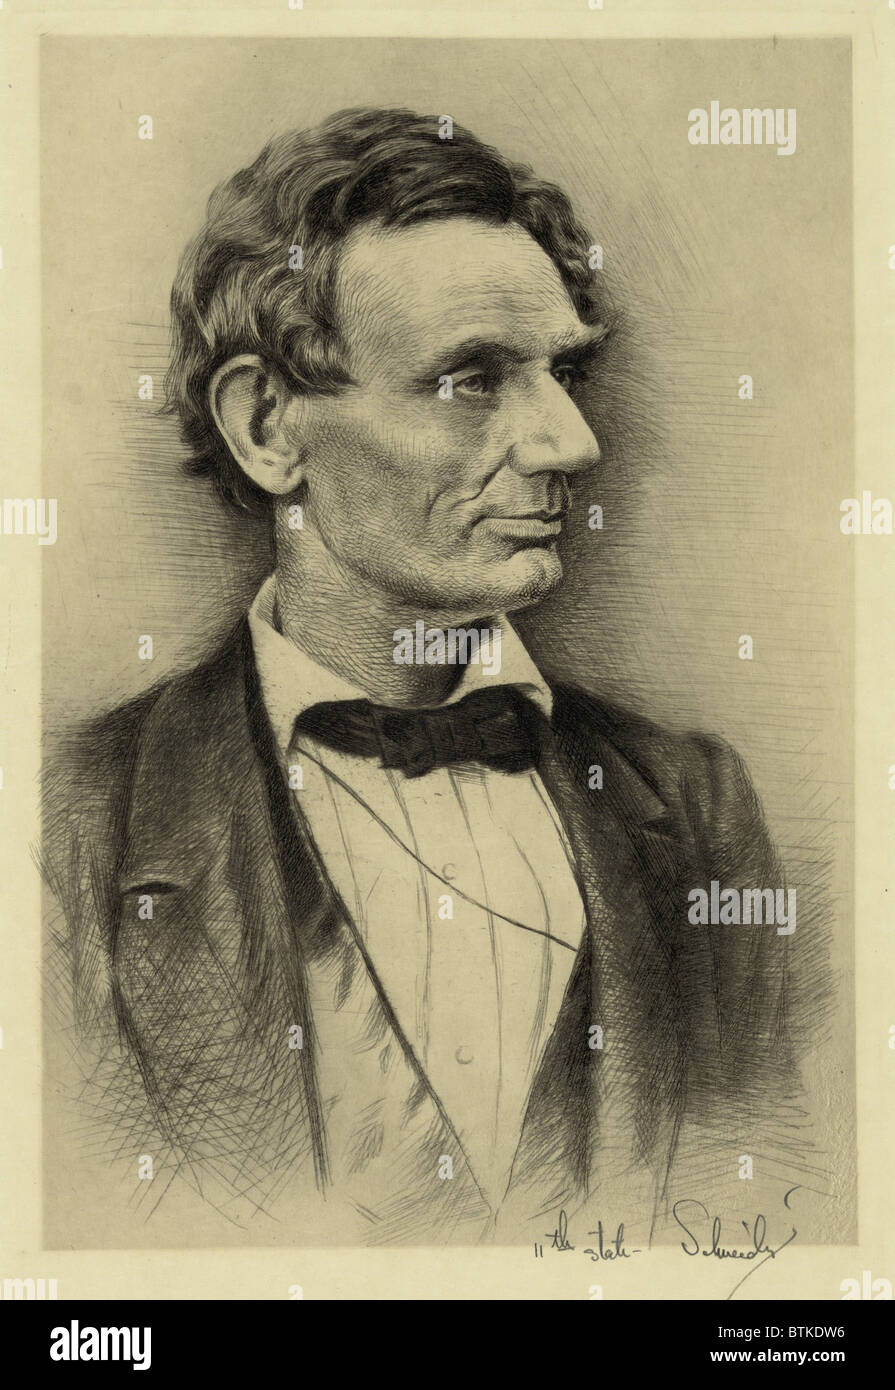 Abraham Lincoln portrait etching made in the early 20th century from Lincoln's classic Alexander Hesler portraits - Stock Image